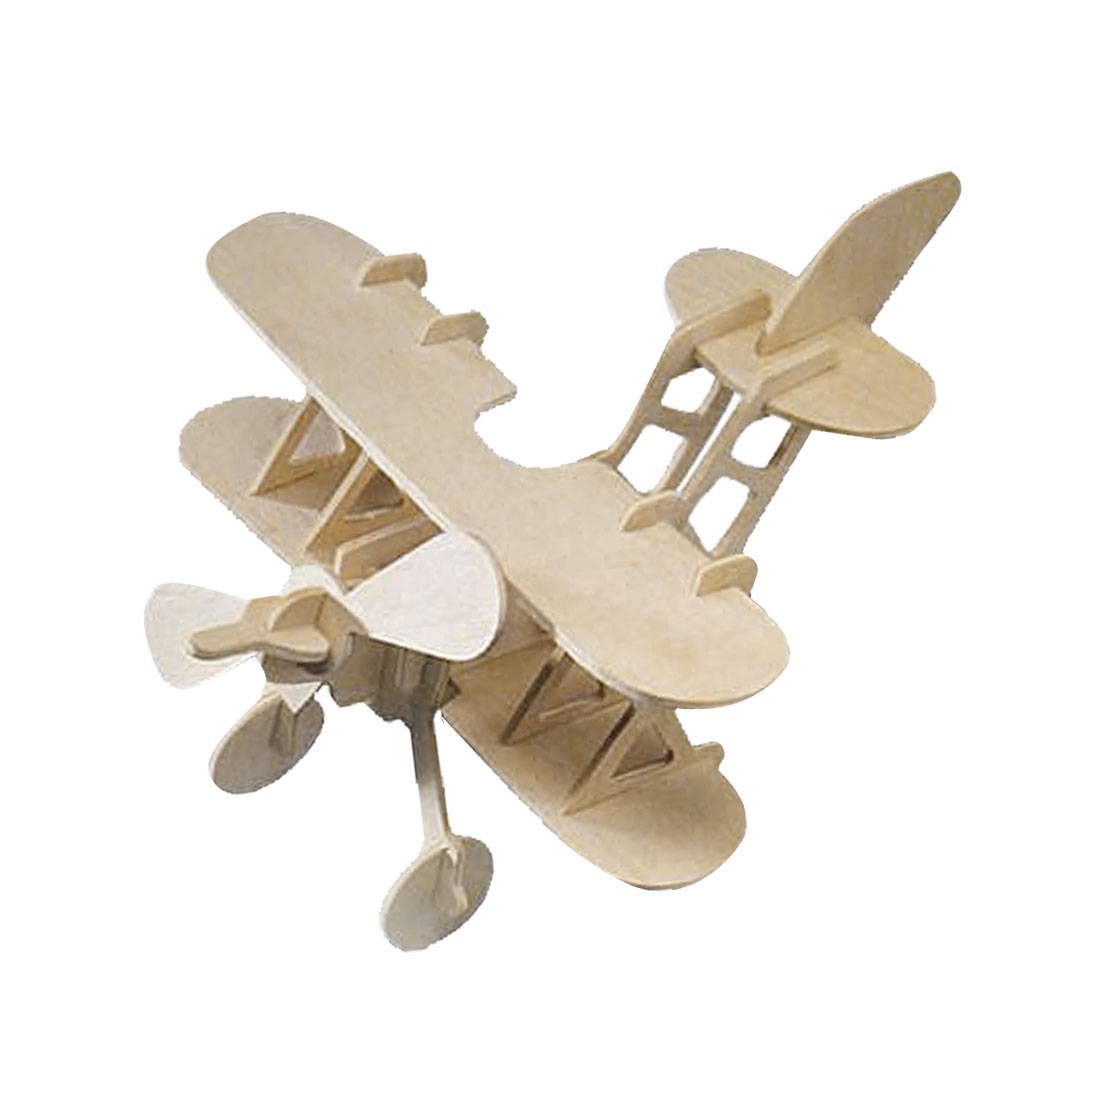 DIY Biplane Model Wooden 3D Assemble Puzzled Toy Woodcraft Construction Kit